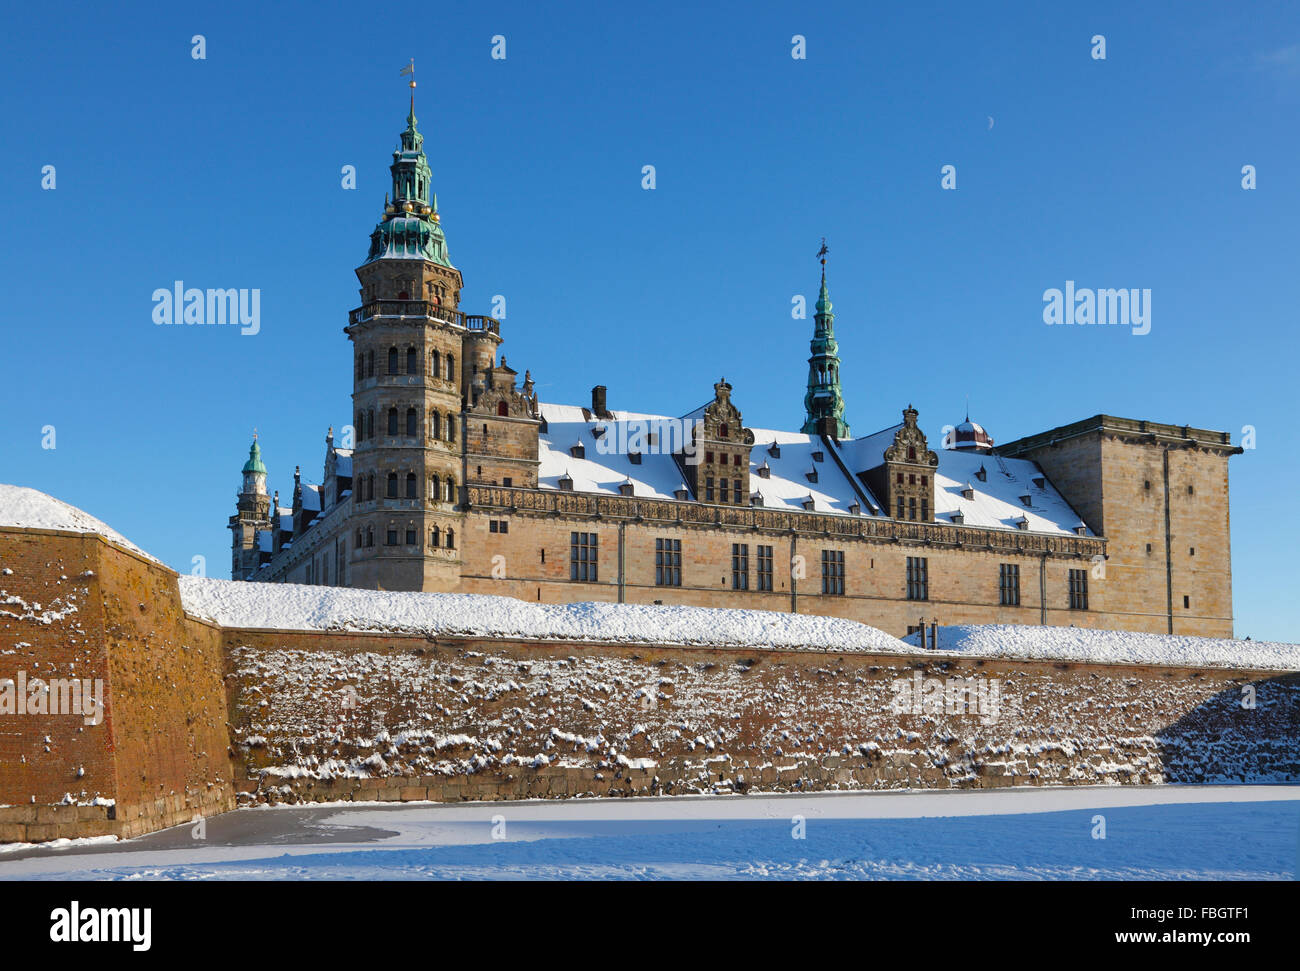 The snow-covered Kronborg Castle in Elsinore, Helsingør, on a sunny winter's day, frozen moat and a blue sky. Stock Photo